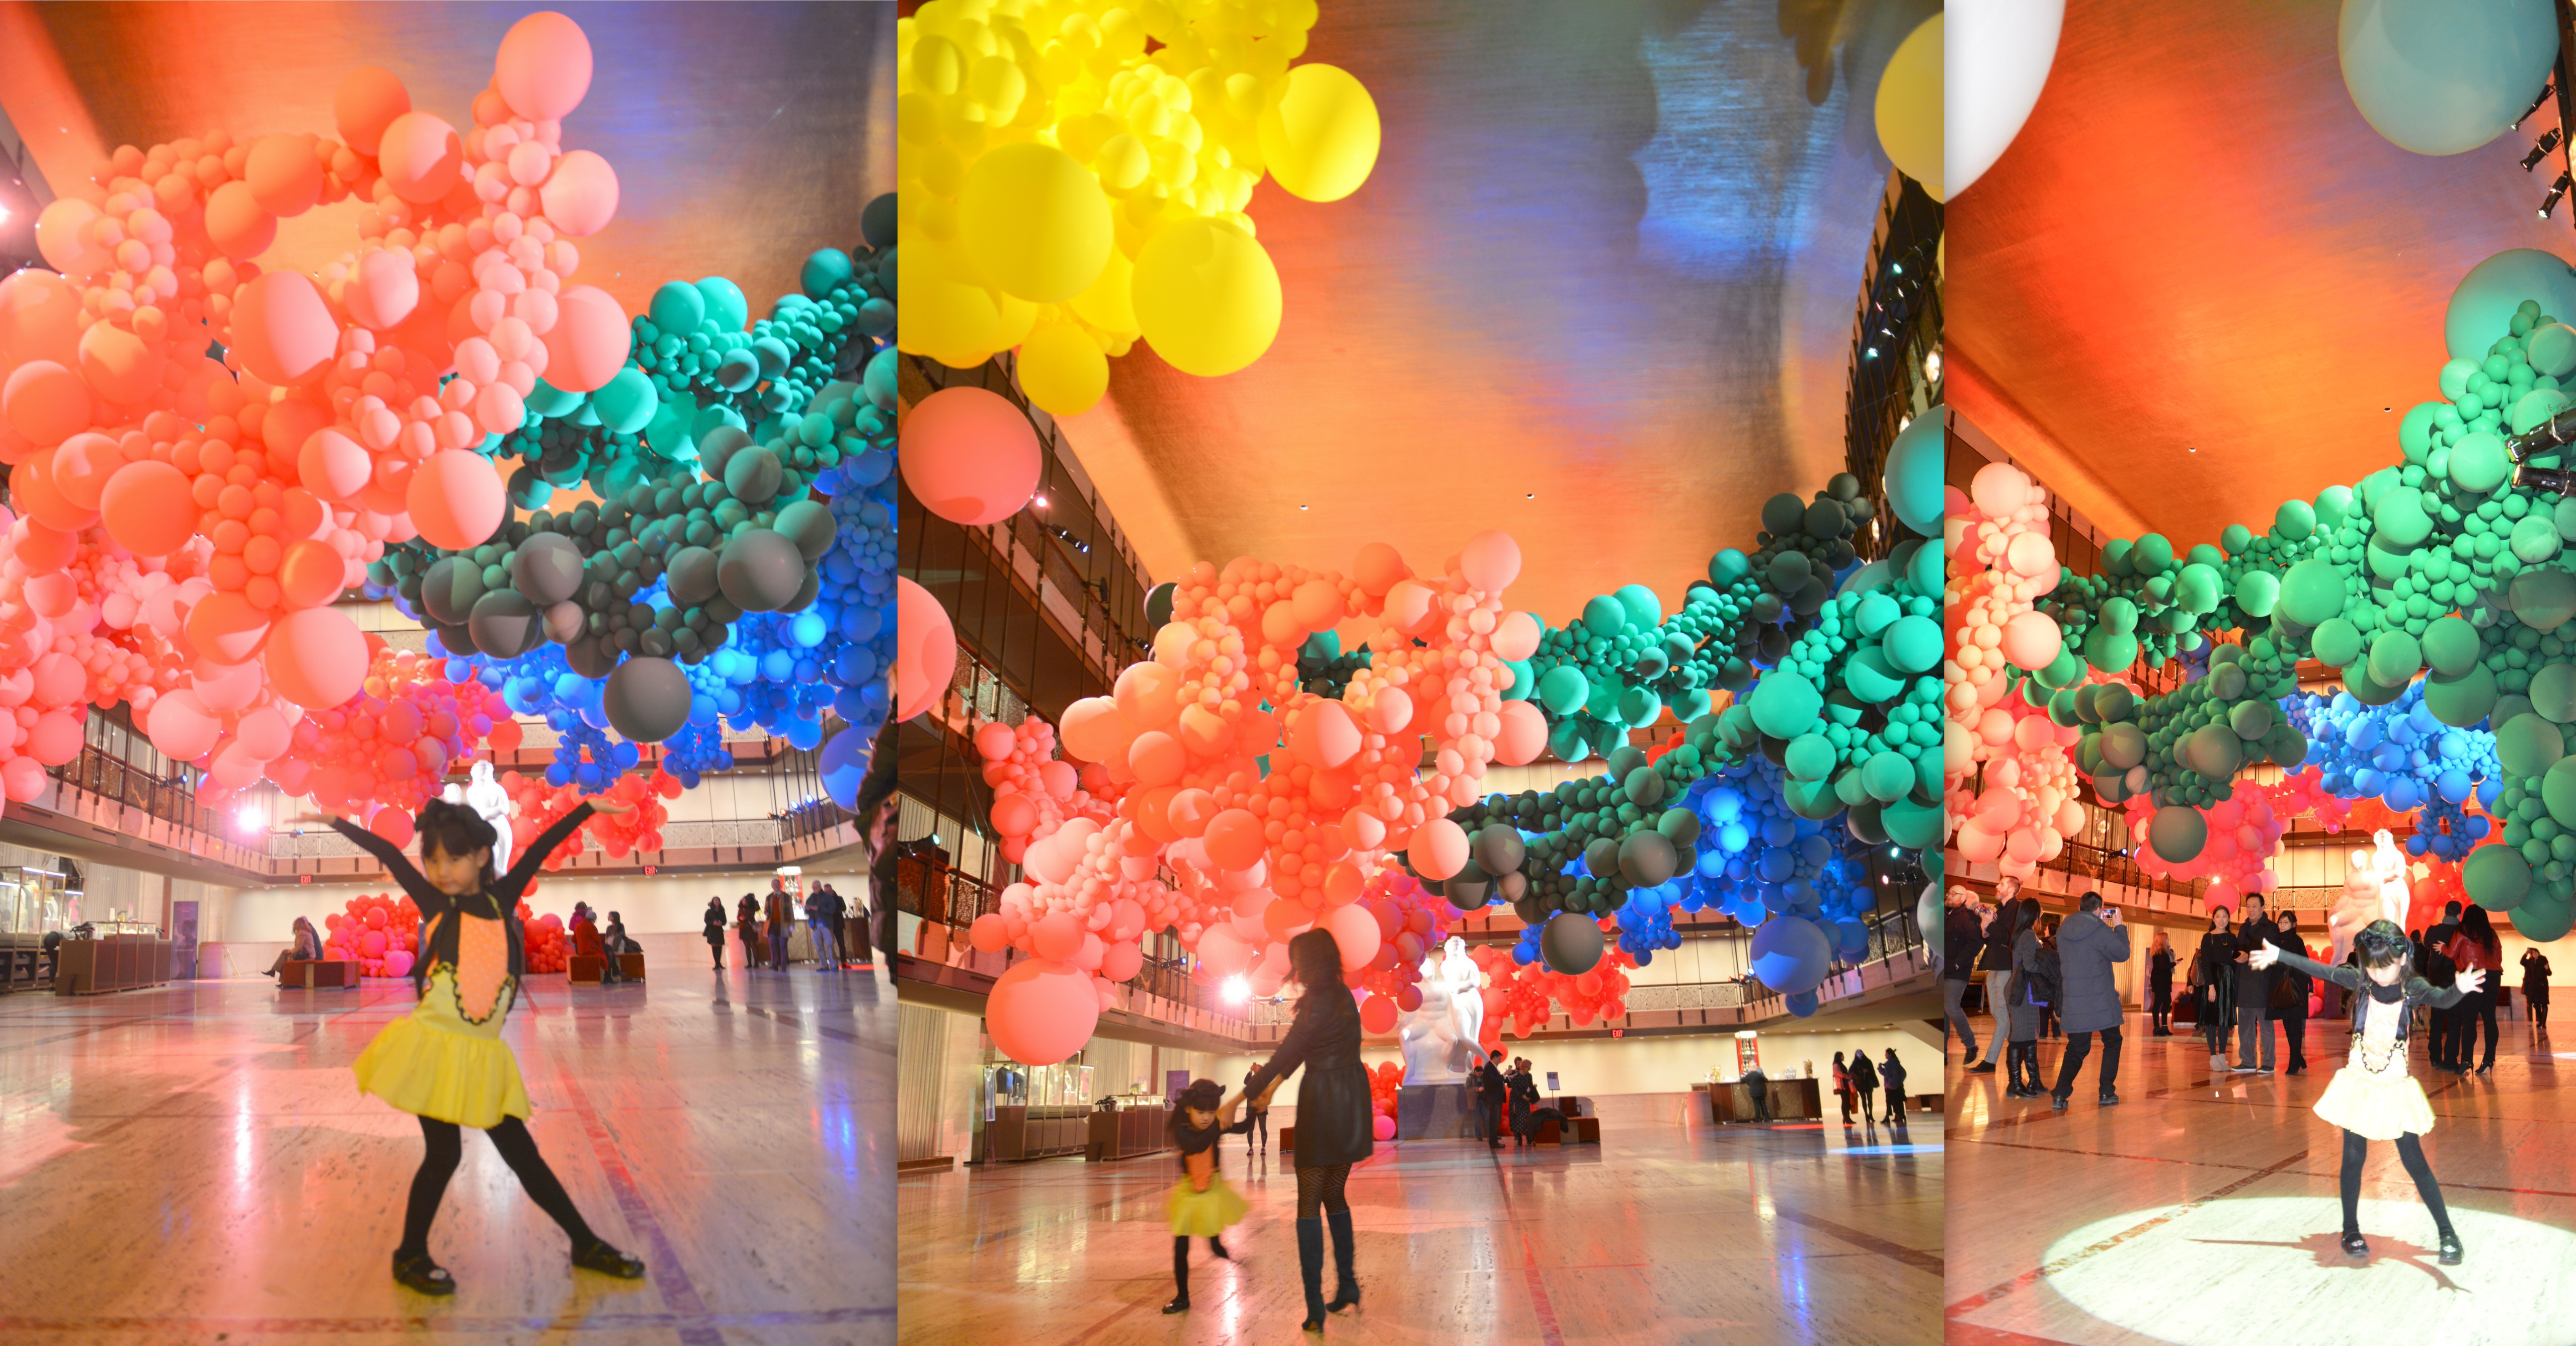 geronimo balloon, geronimo, geronimo ny, geronimo at lincoln center, lincoln center balloons, balloon art, nycb art series